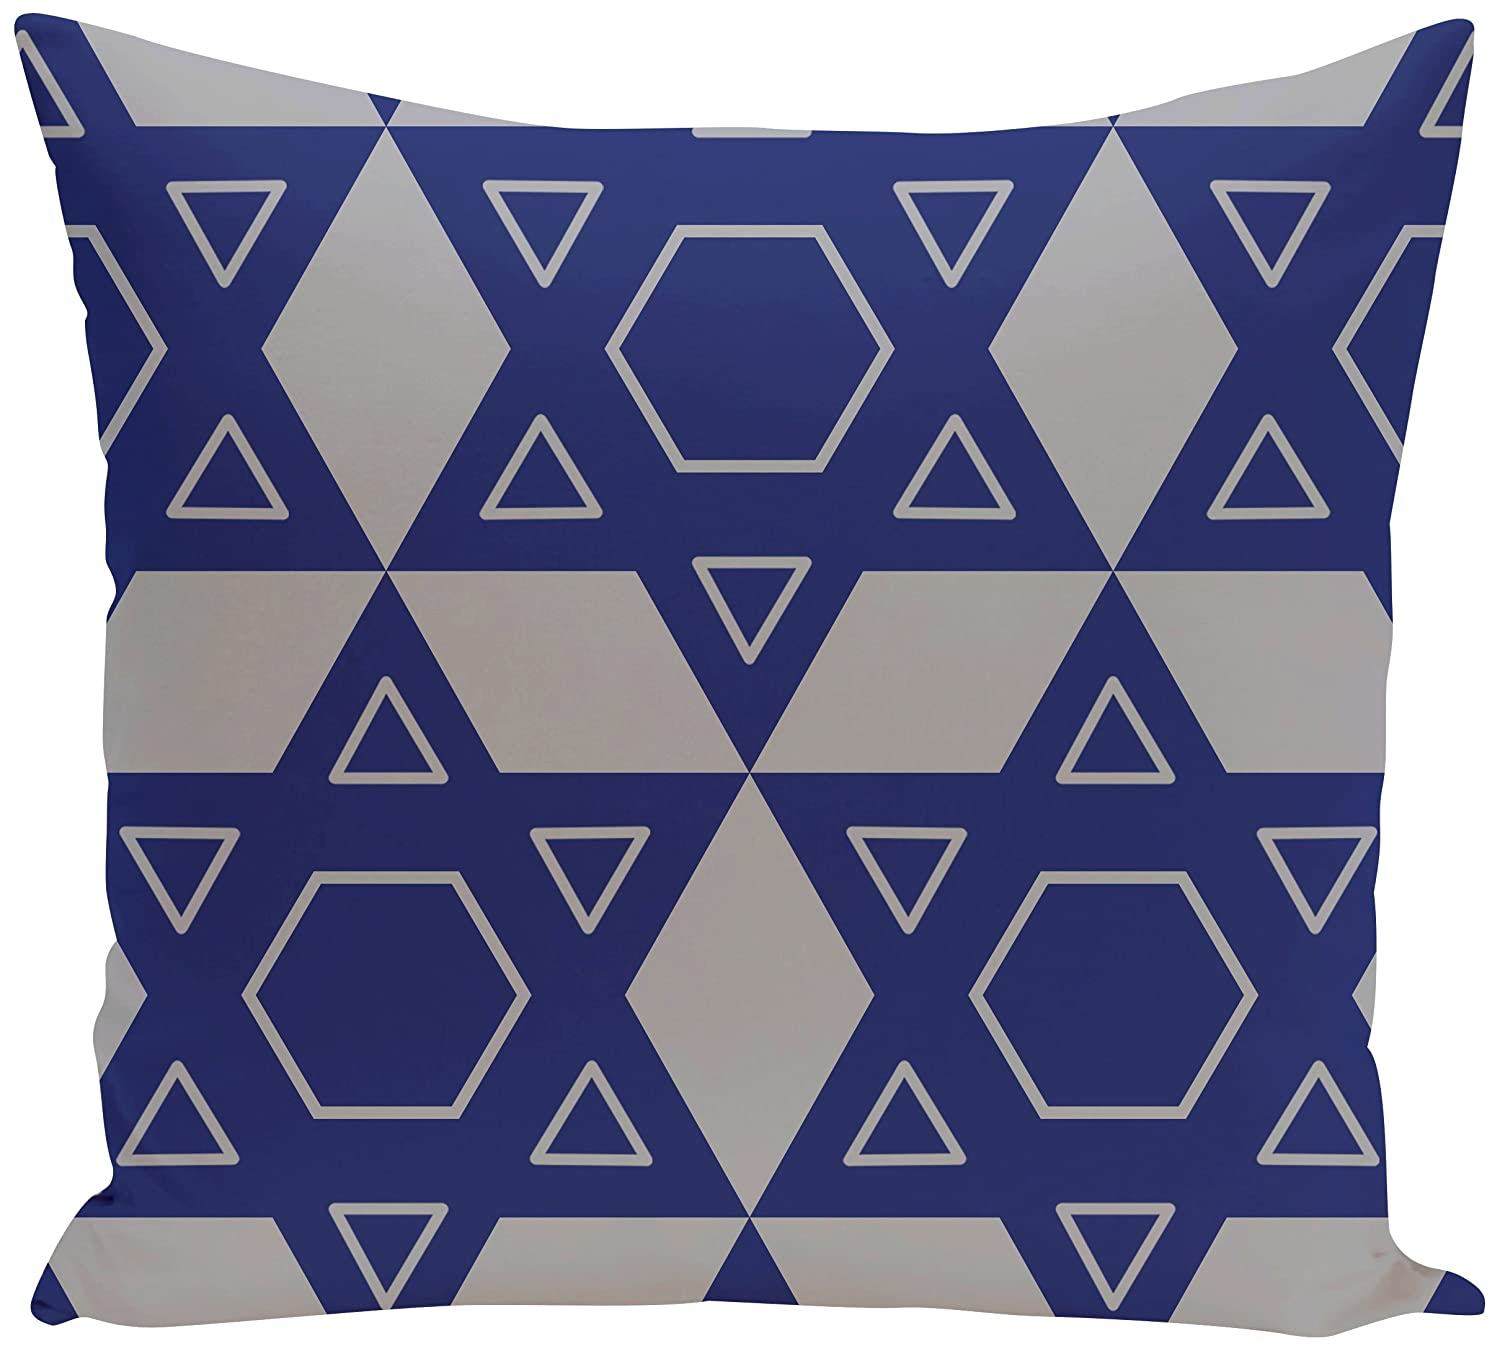 Decorative Holiday Geometric Print Pillow Light Gray,Gray E by design PHGN317GY1BL20-26 PHGN317GY1BL20-26 Star Quilt